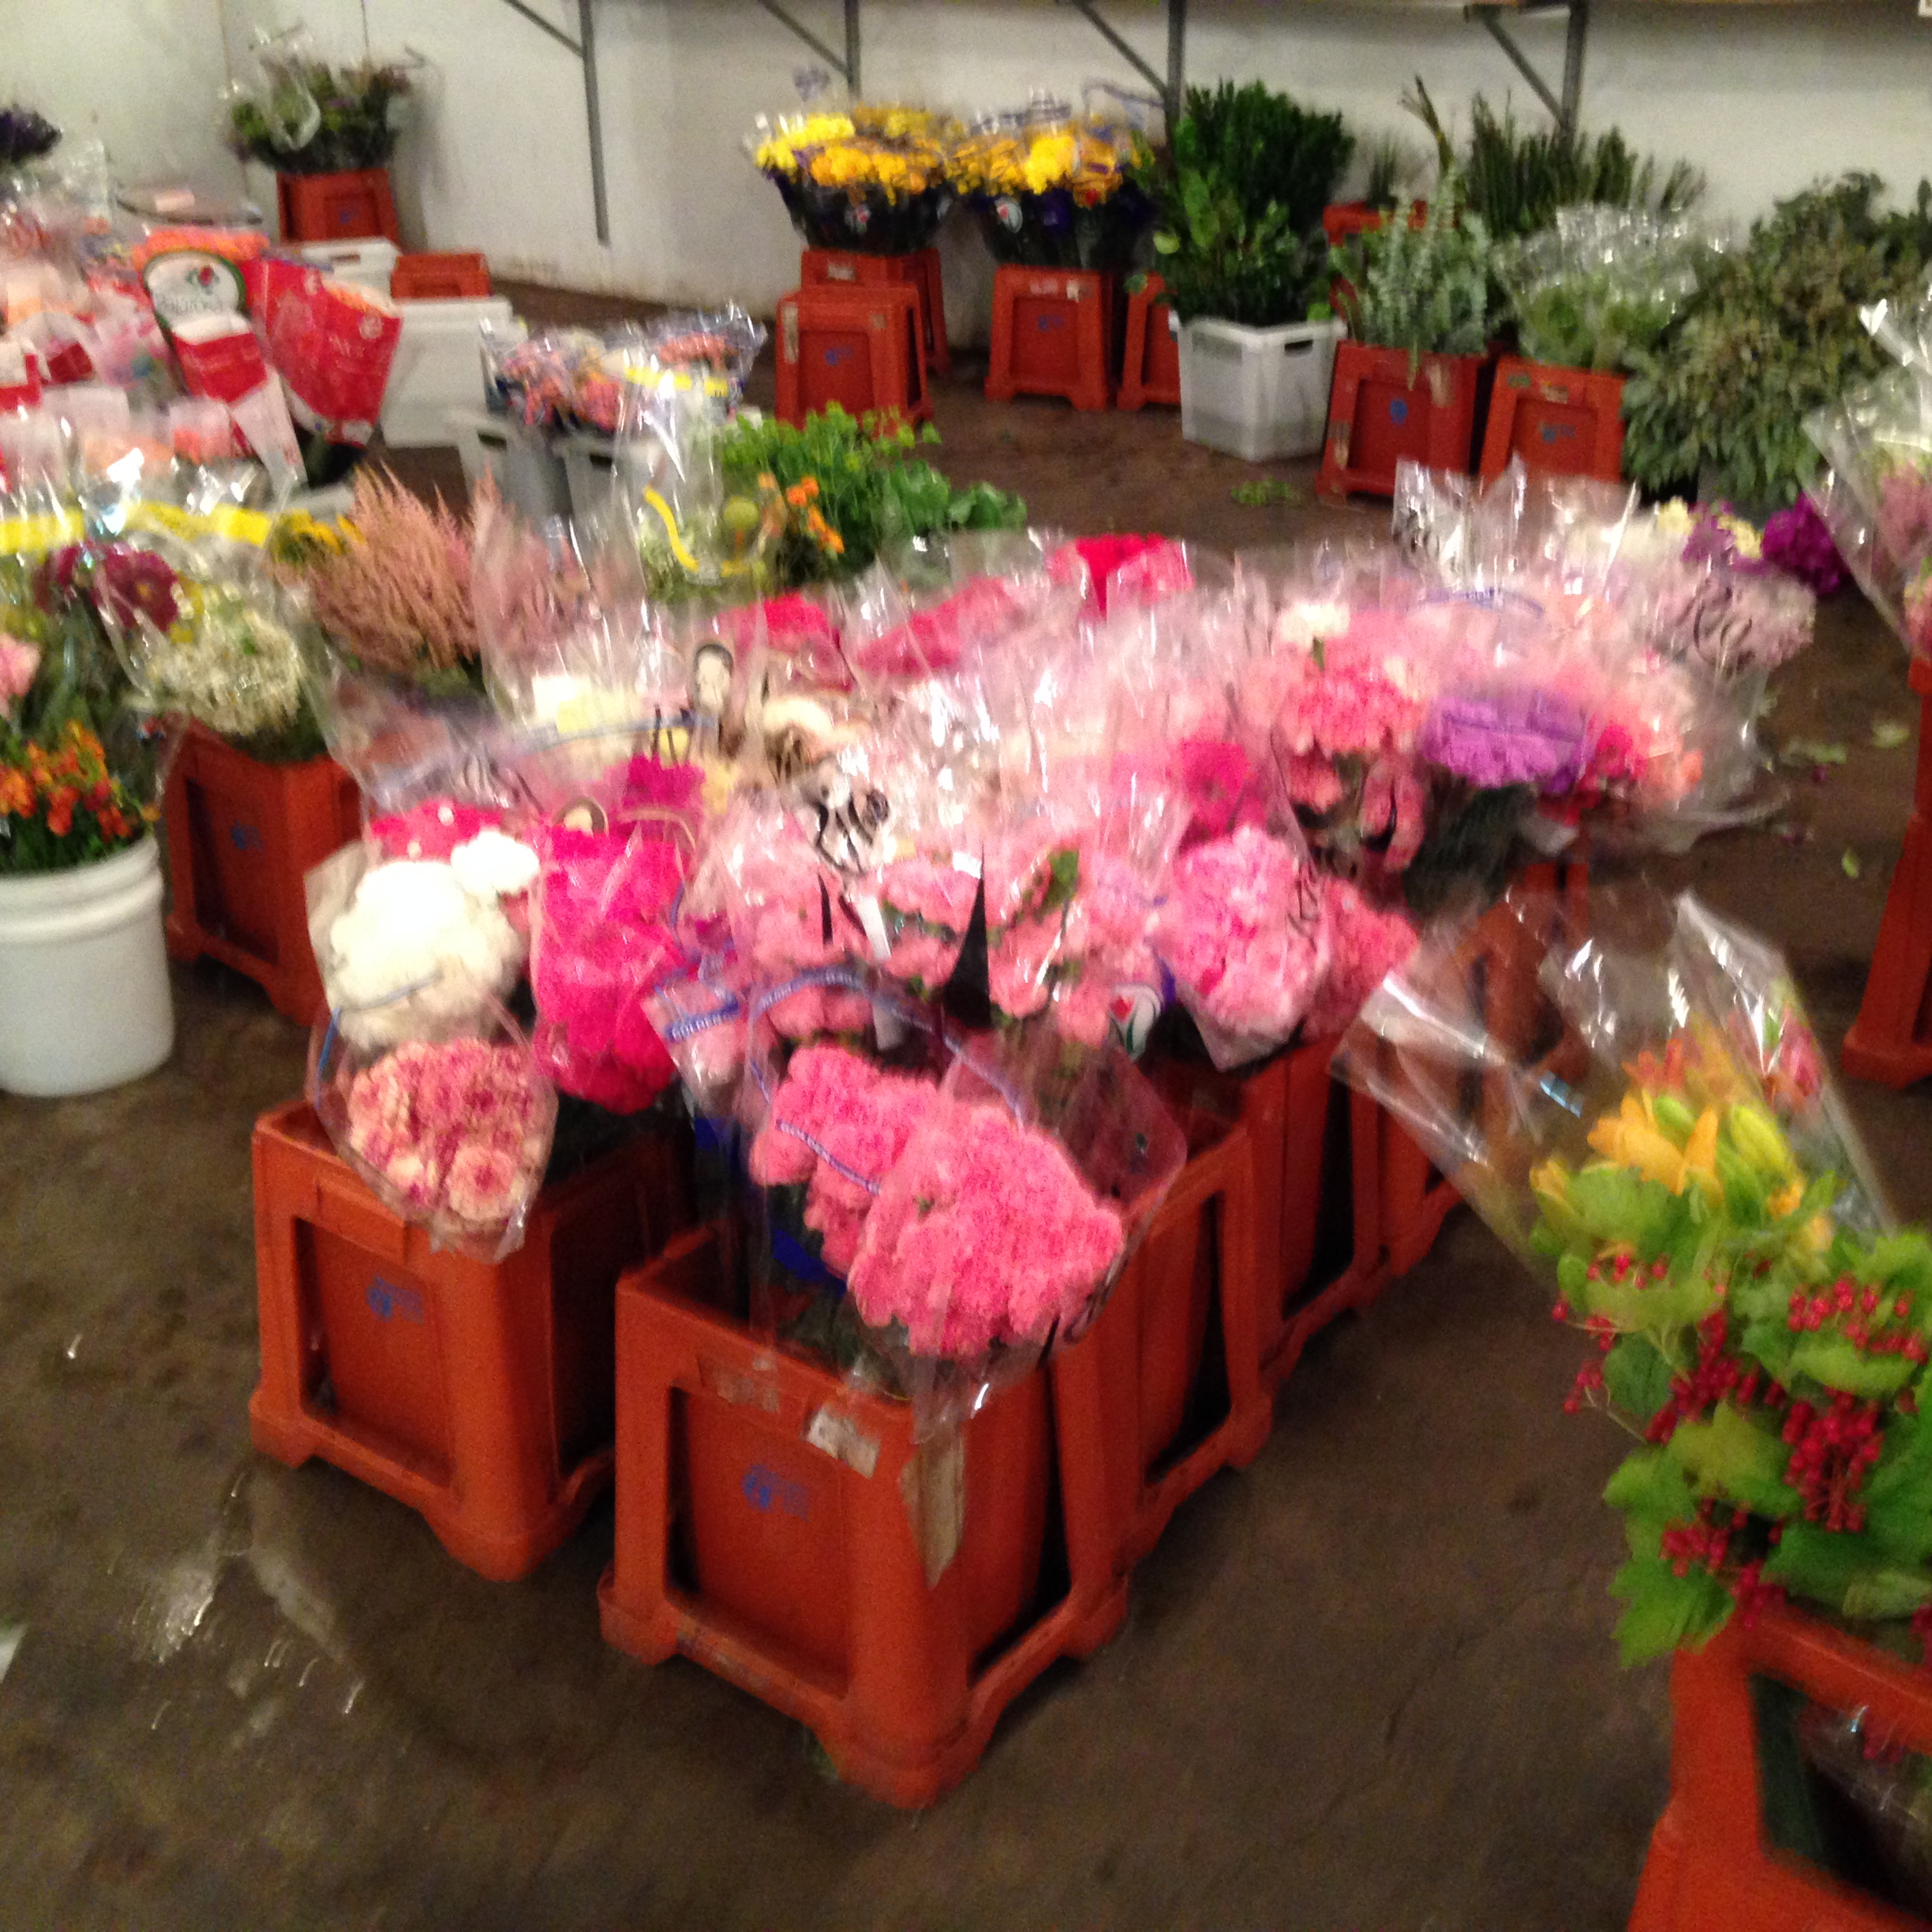 The wholesaler floral company and it's goodies.